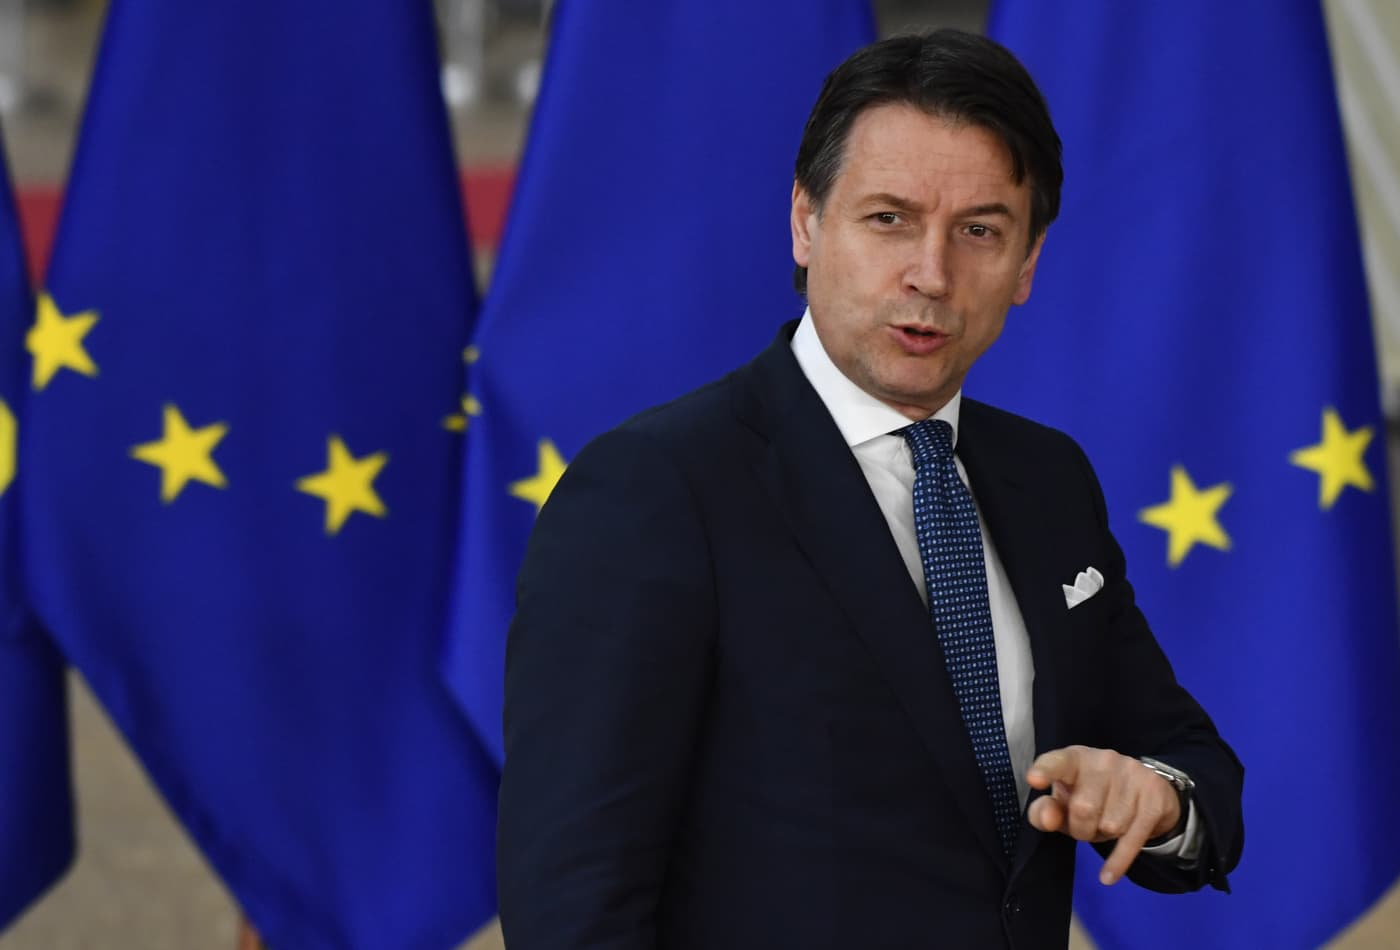 Italy's M5S 'annihilated' in regional vote which pressures an already fragile government